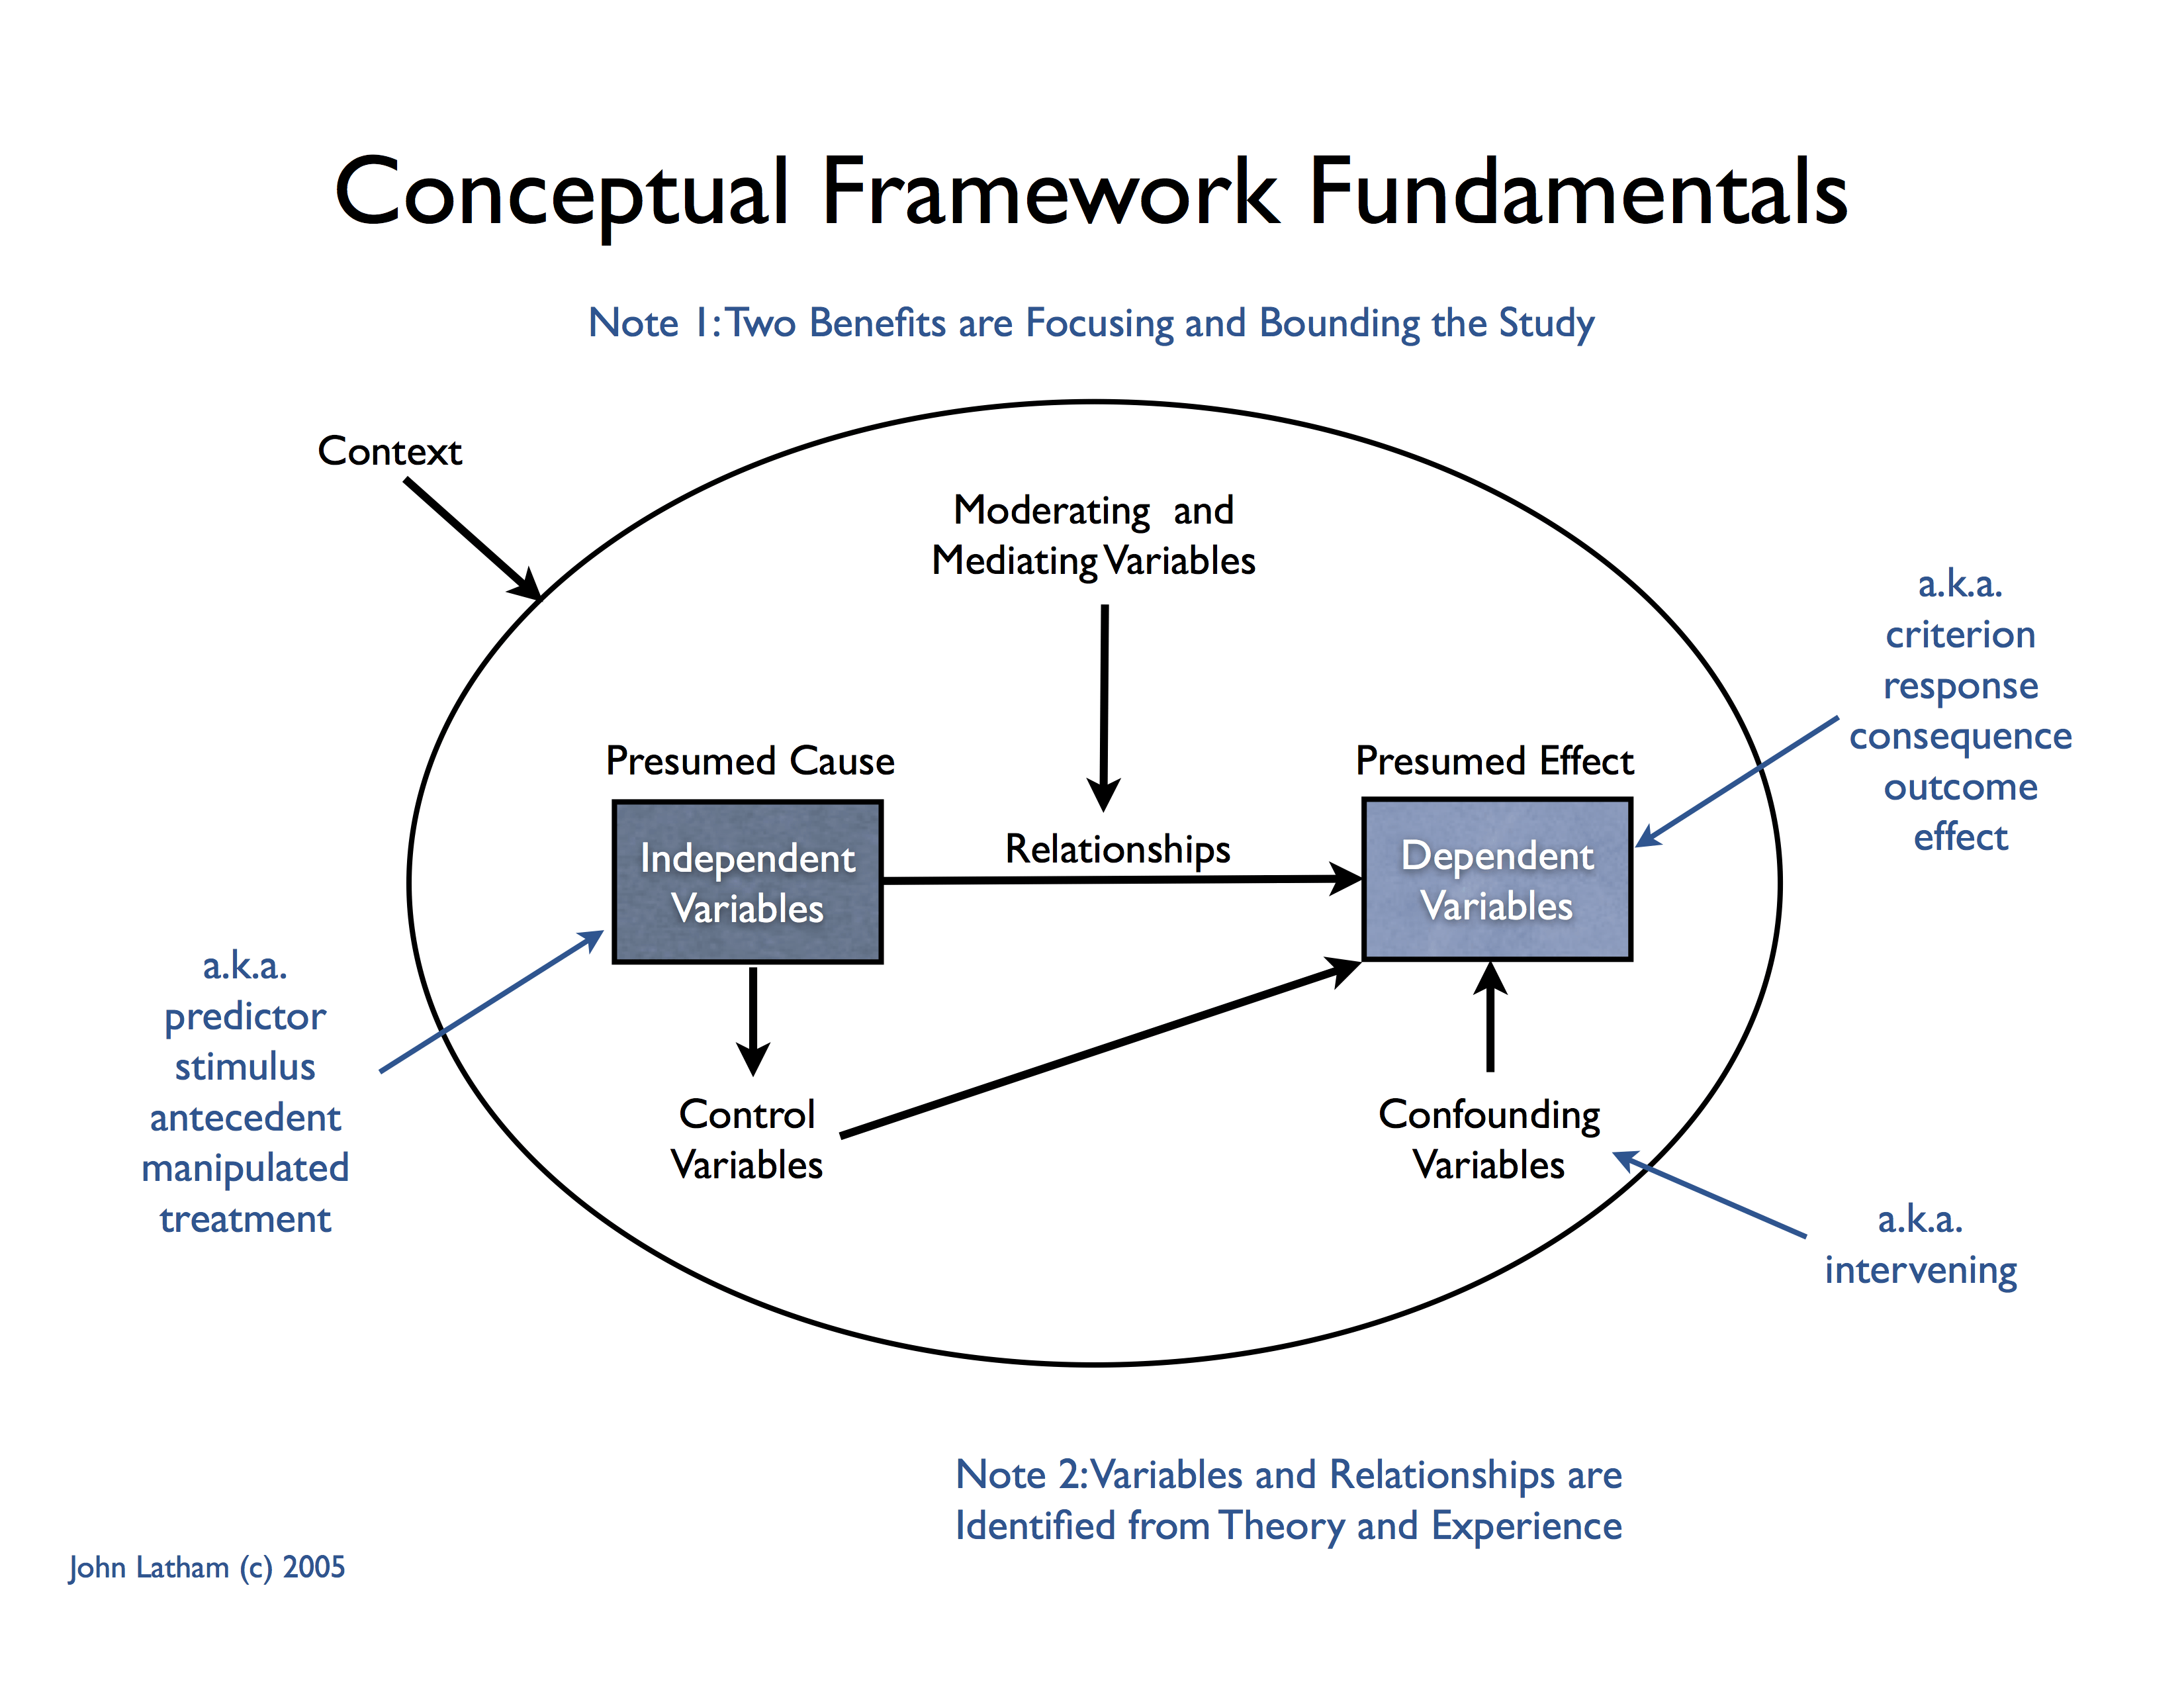 The Conceptual Framework Or Theoretical Framework Describes And Depicts The Key Constructs